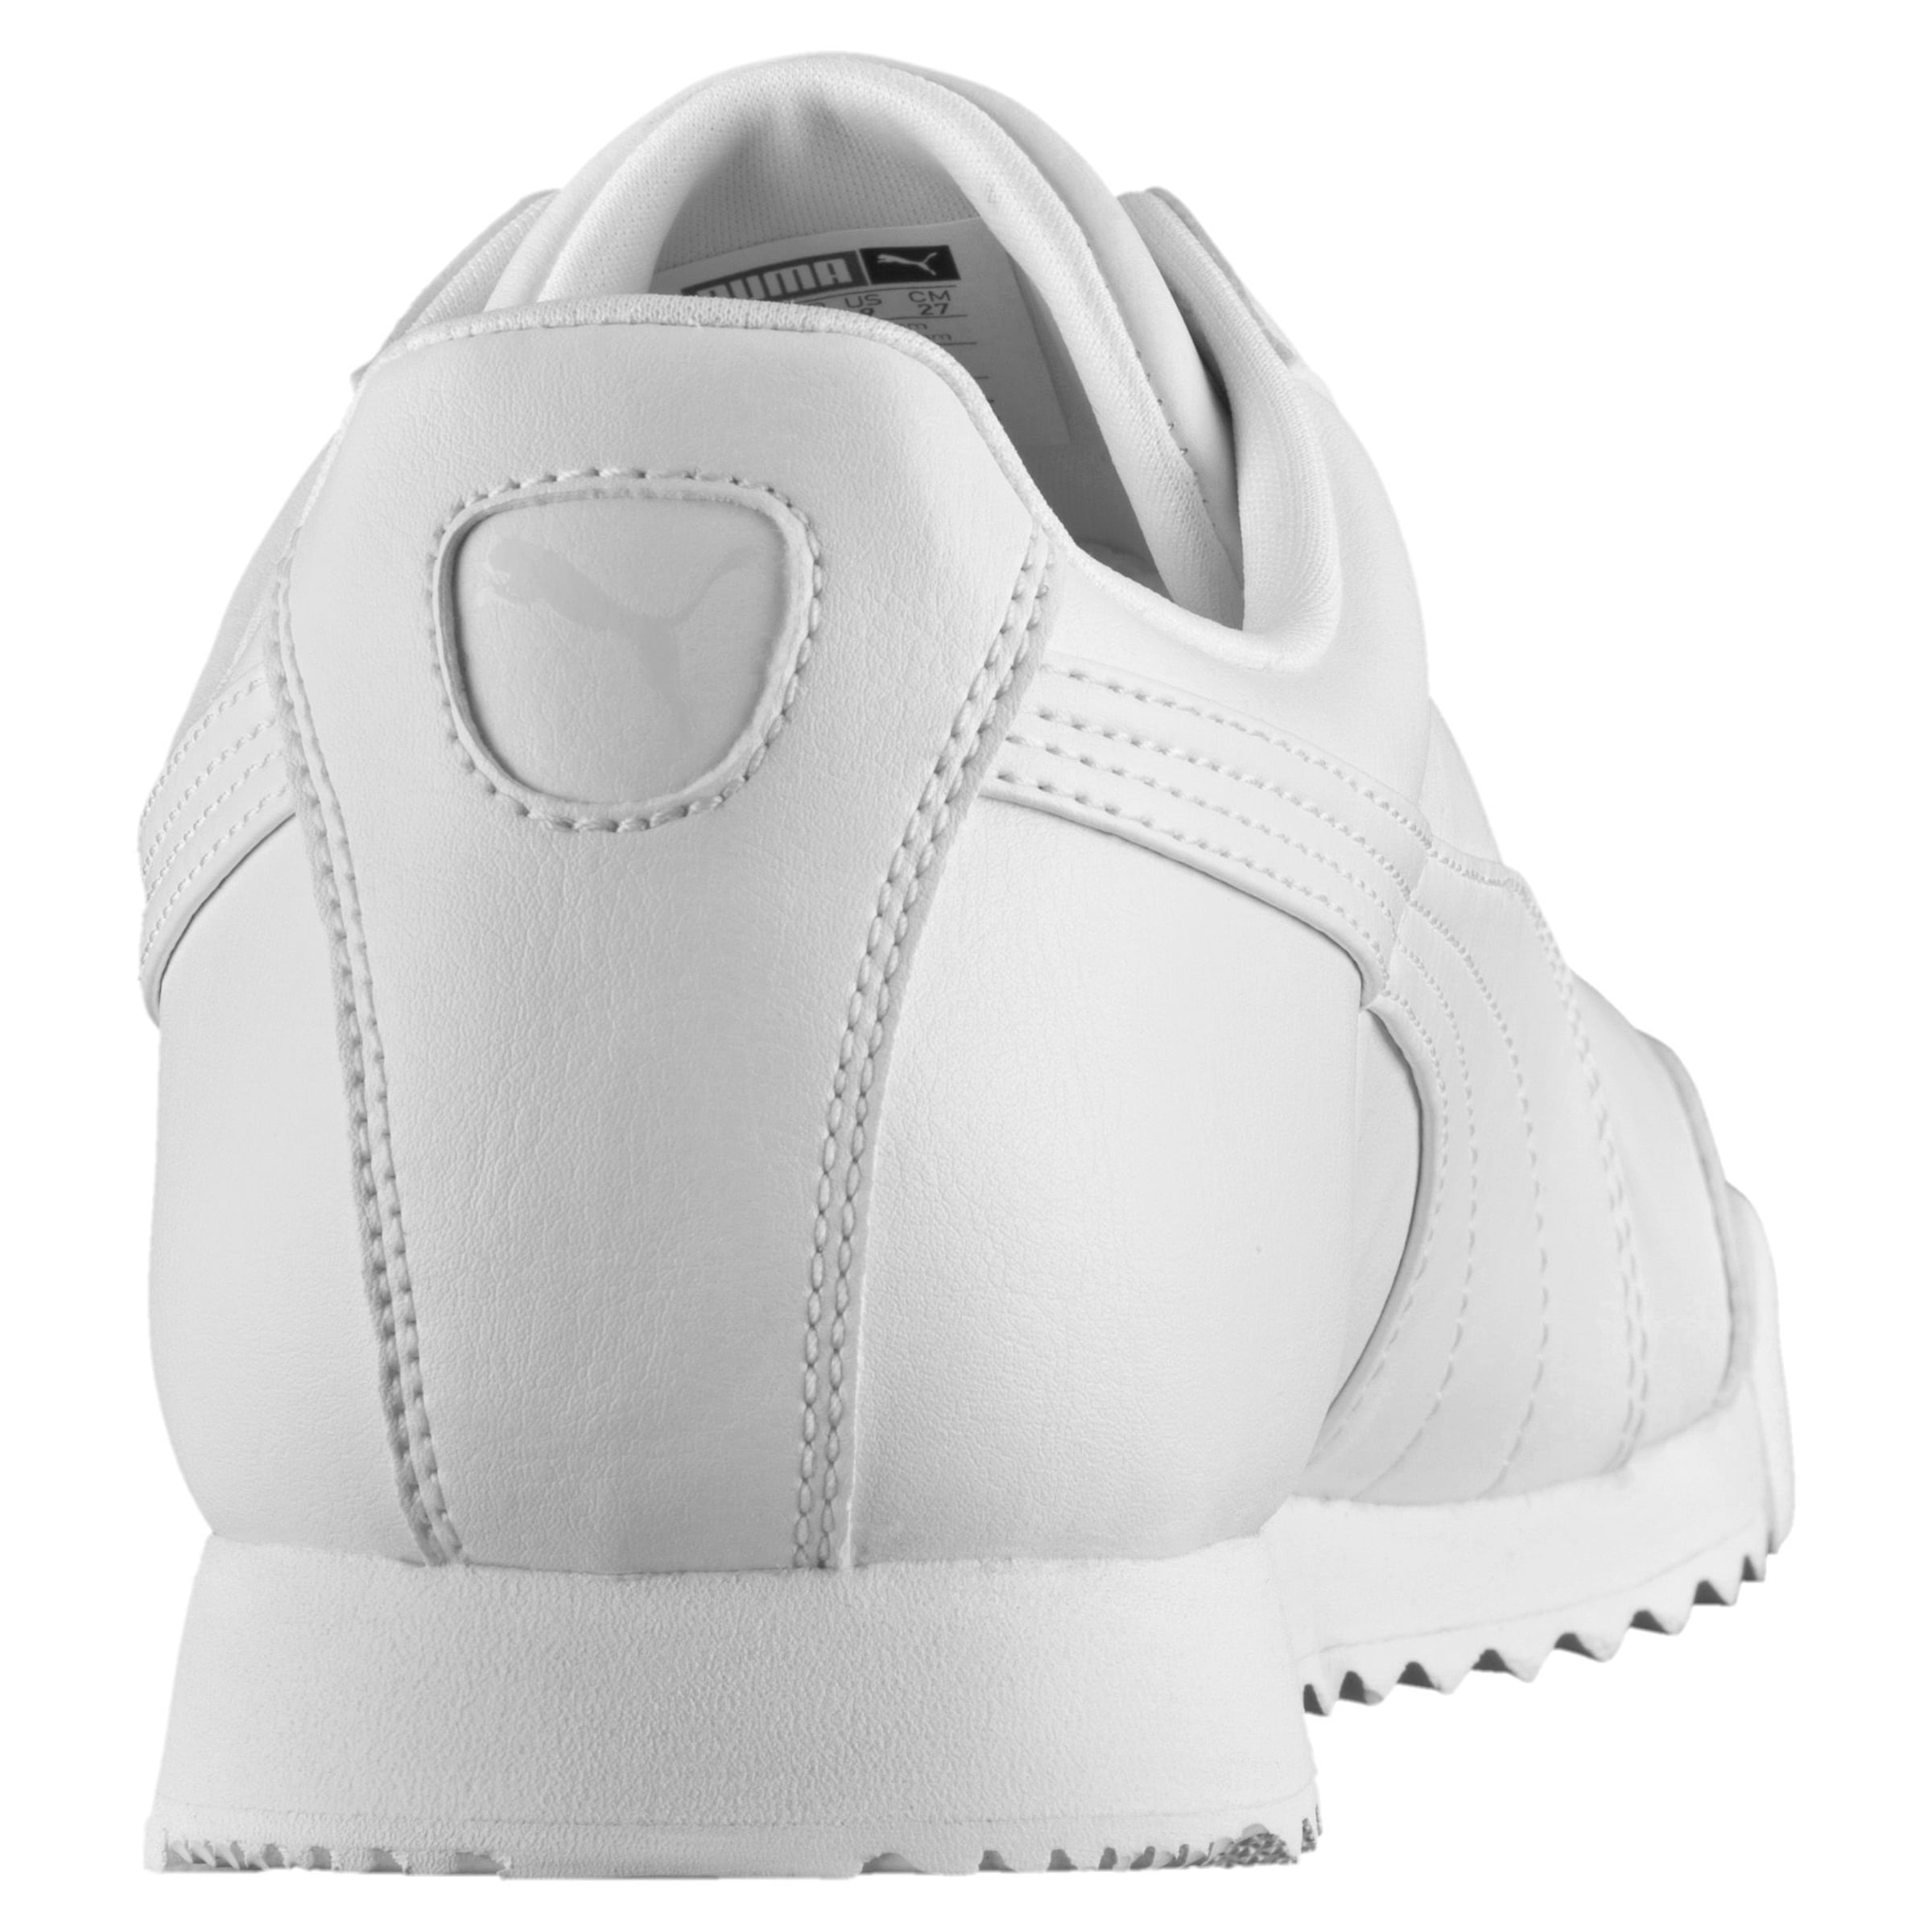 'roma Offwhite In Sneaker Basic' Puma m0yNvO8nw